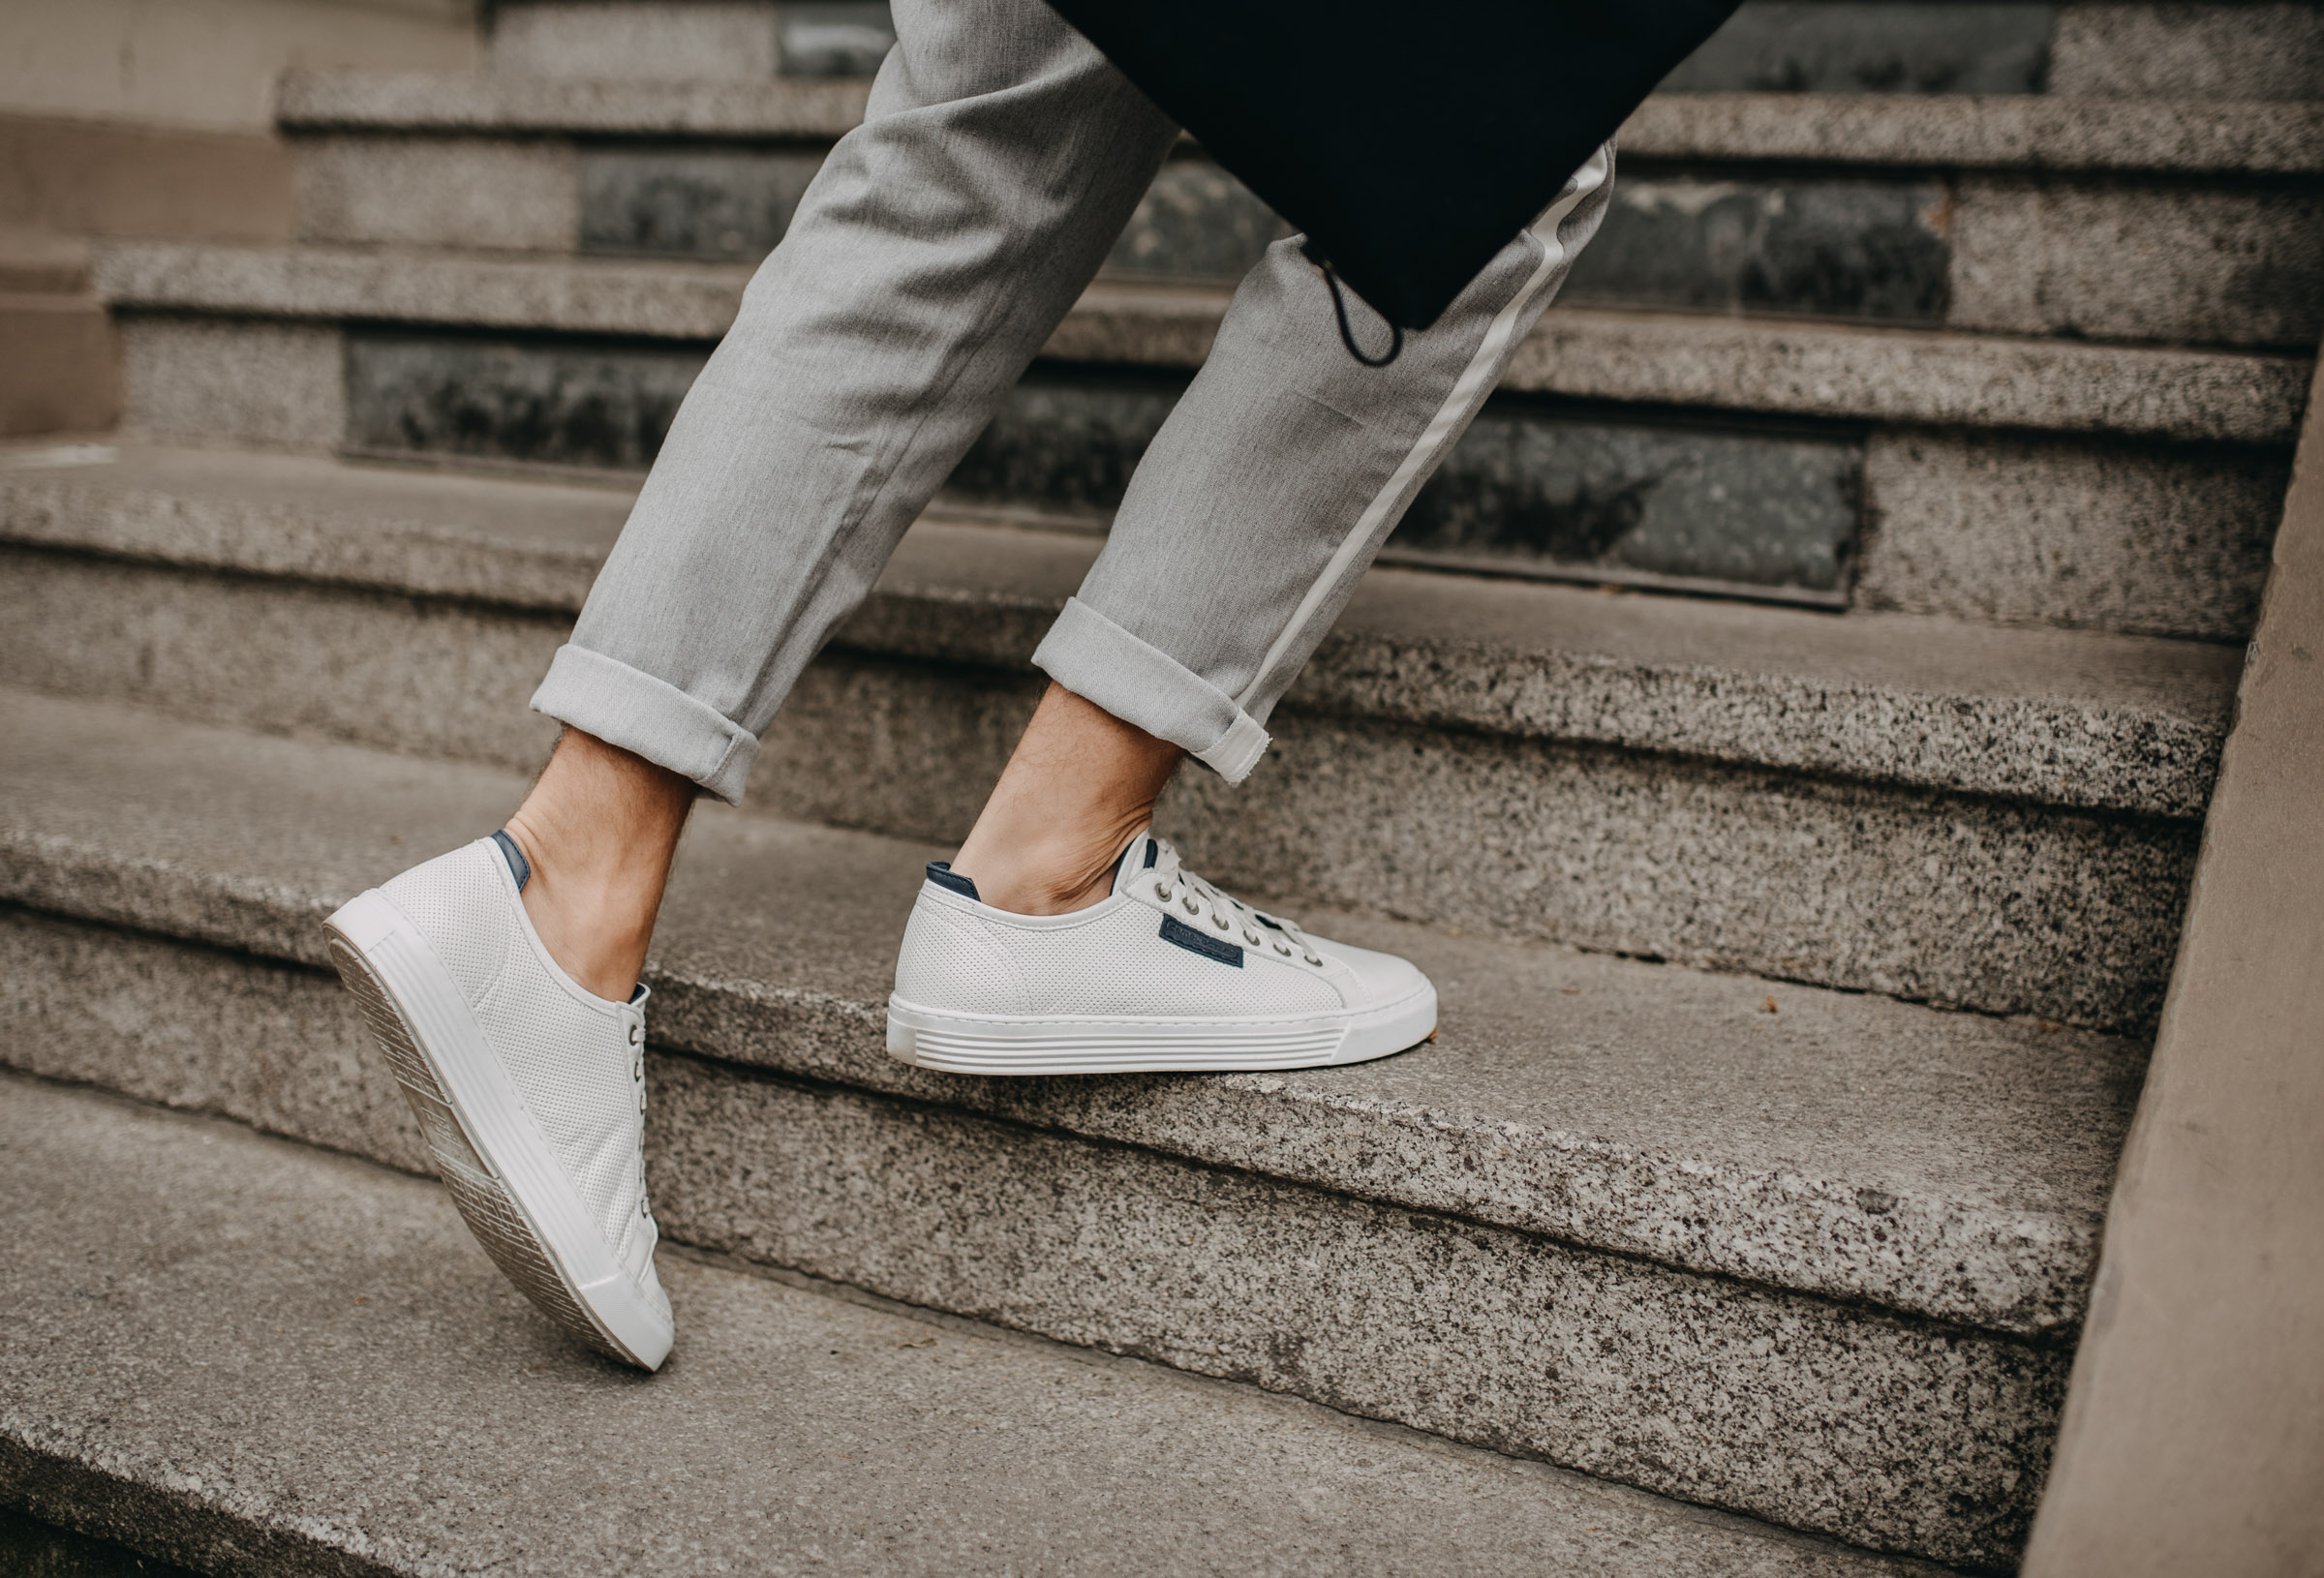 Tommeezjerry-Lifestyleblog-Fashionblog-Maennermodeblog-Maennerblog-Modeblog-White-Sneakers-Camel-Active-Casual-Chic-Moderngentleman-Summerstyle-Business-Style